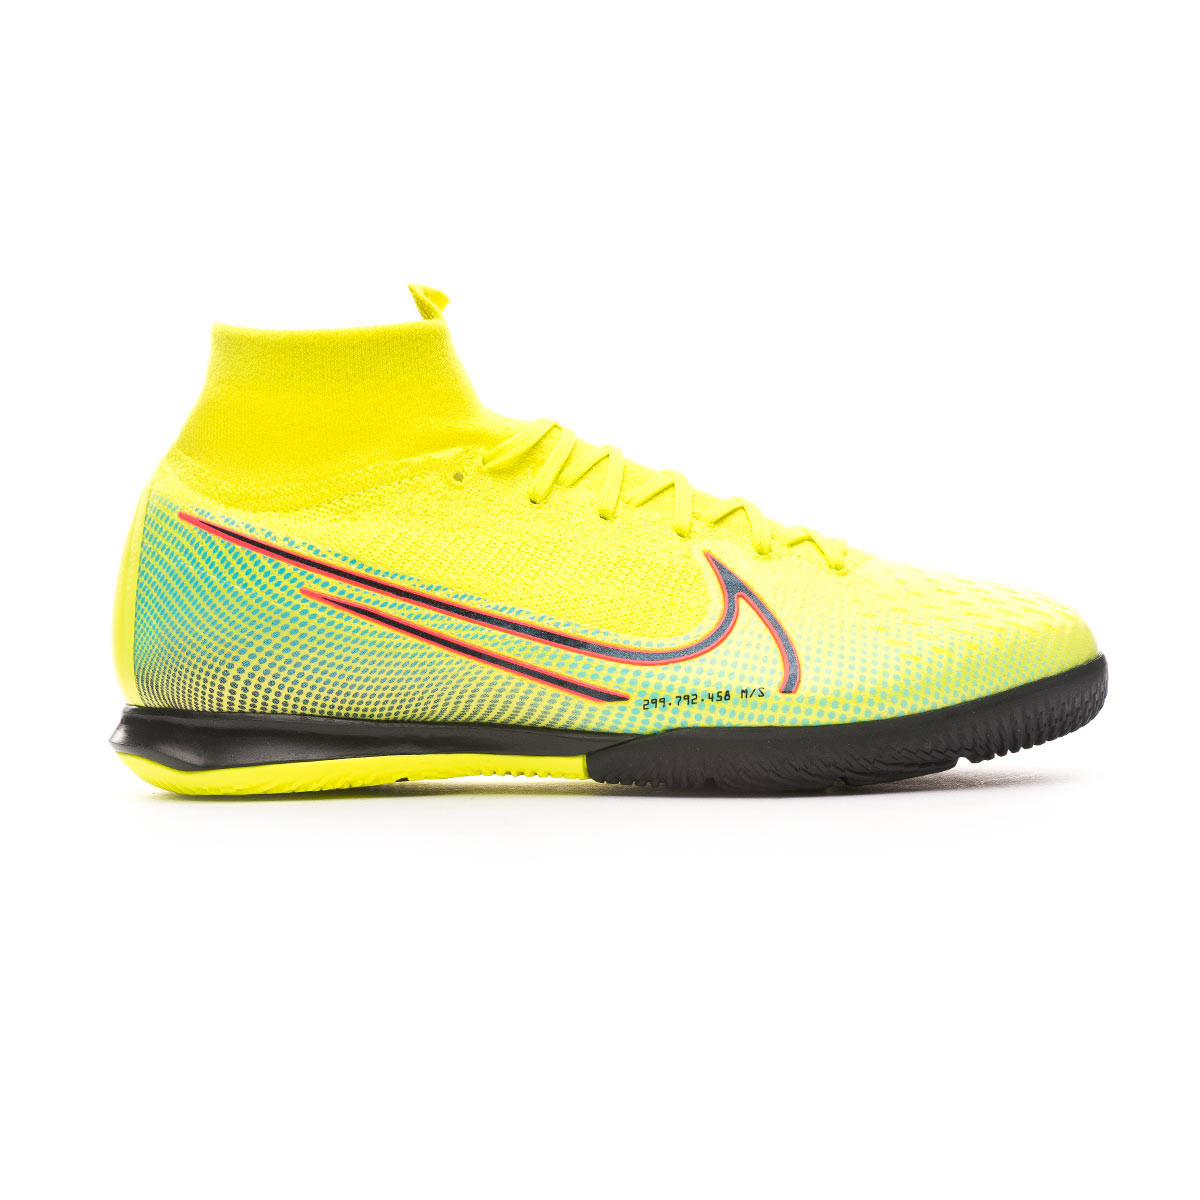 Chaussure de futsal Nike Mercurial Superfly VII Elite MDS 2 IC